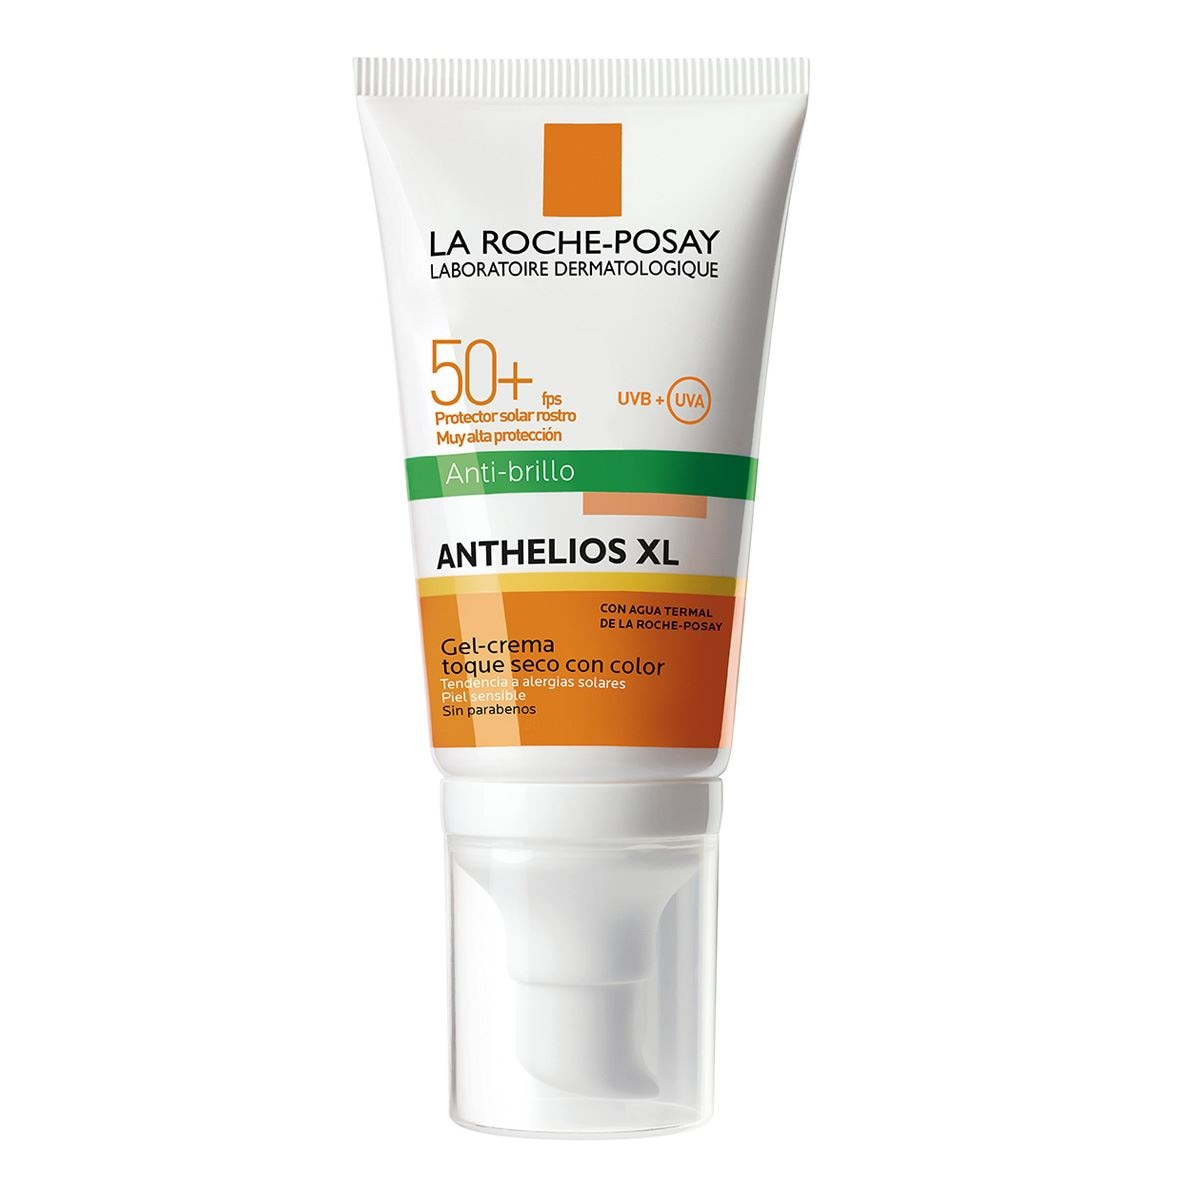 Anthelios XL 50+FPS Toque Seco Con Color 50ml